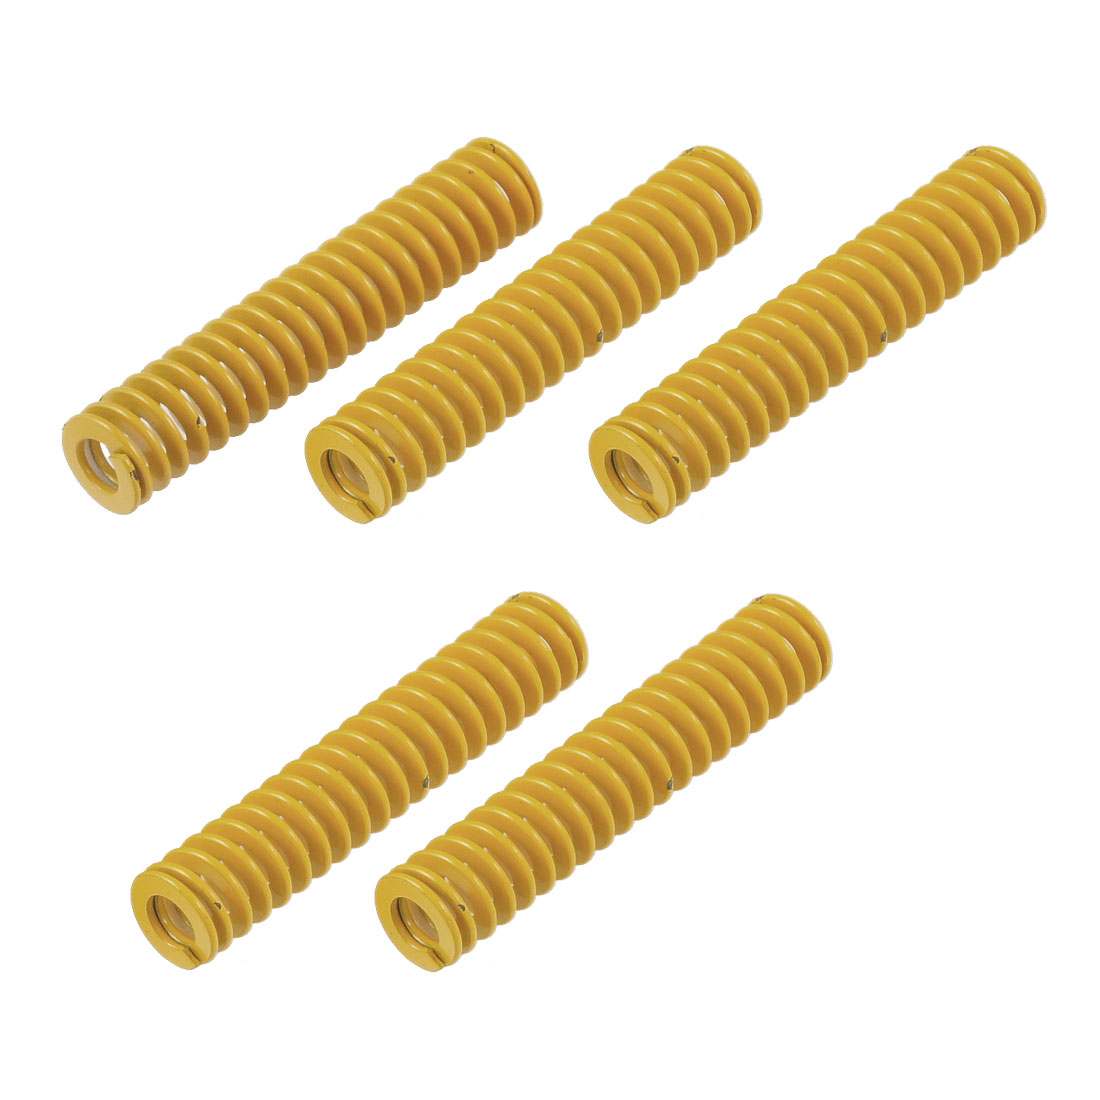 Yellow 12mm x 6mm x 60mm Rectangular Section Mould Die Spring 5 Pcs